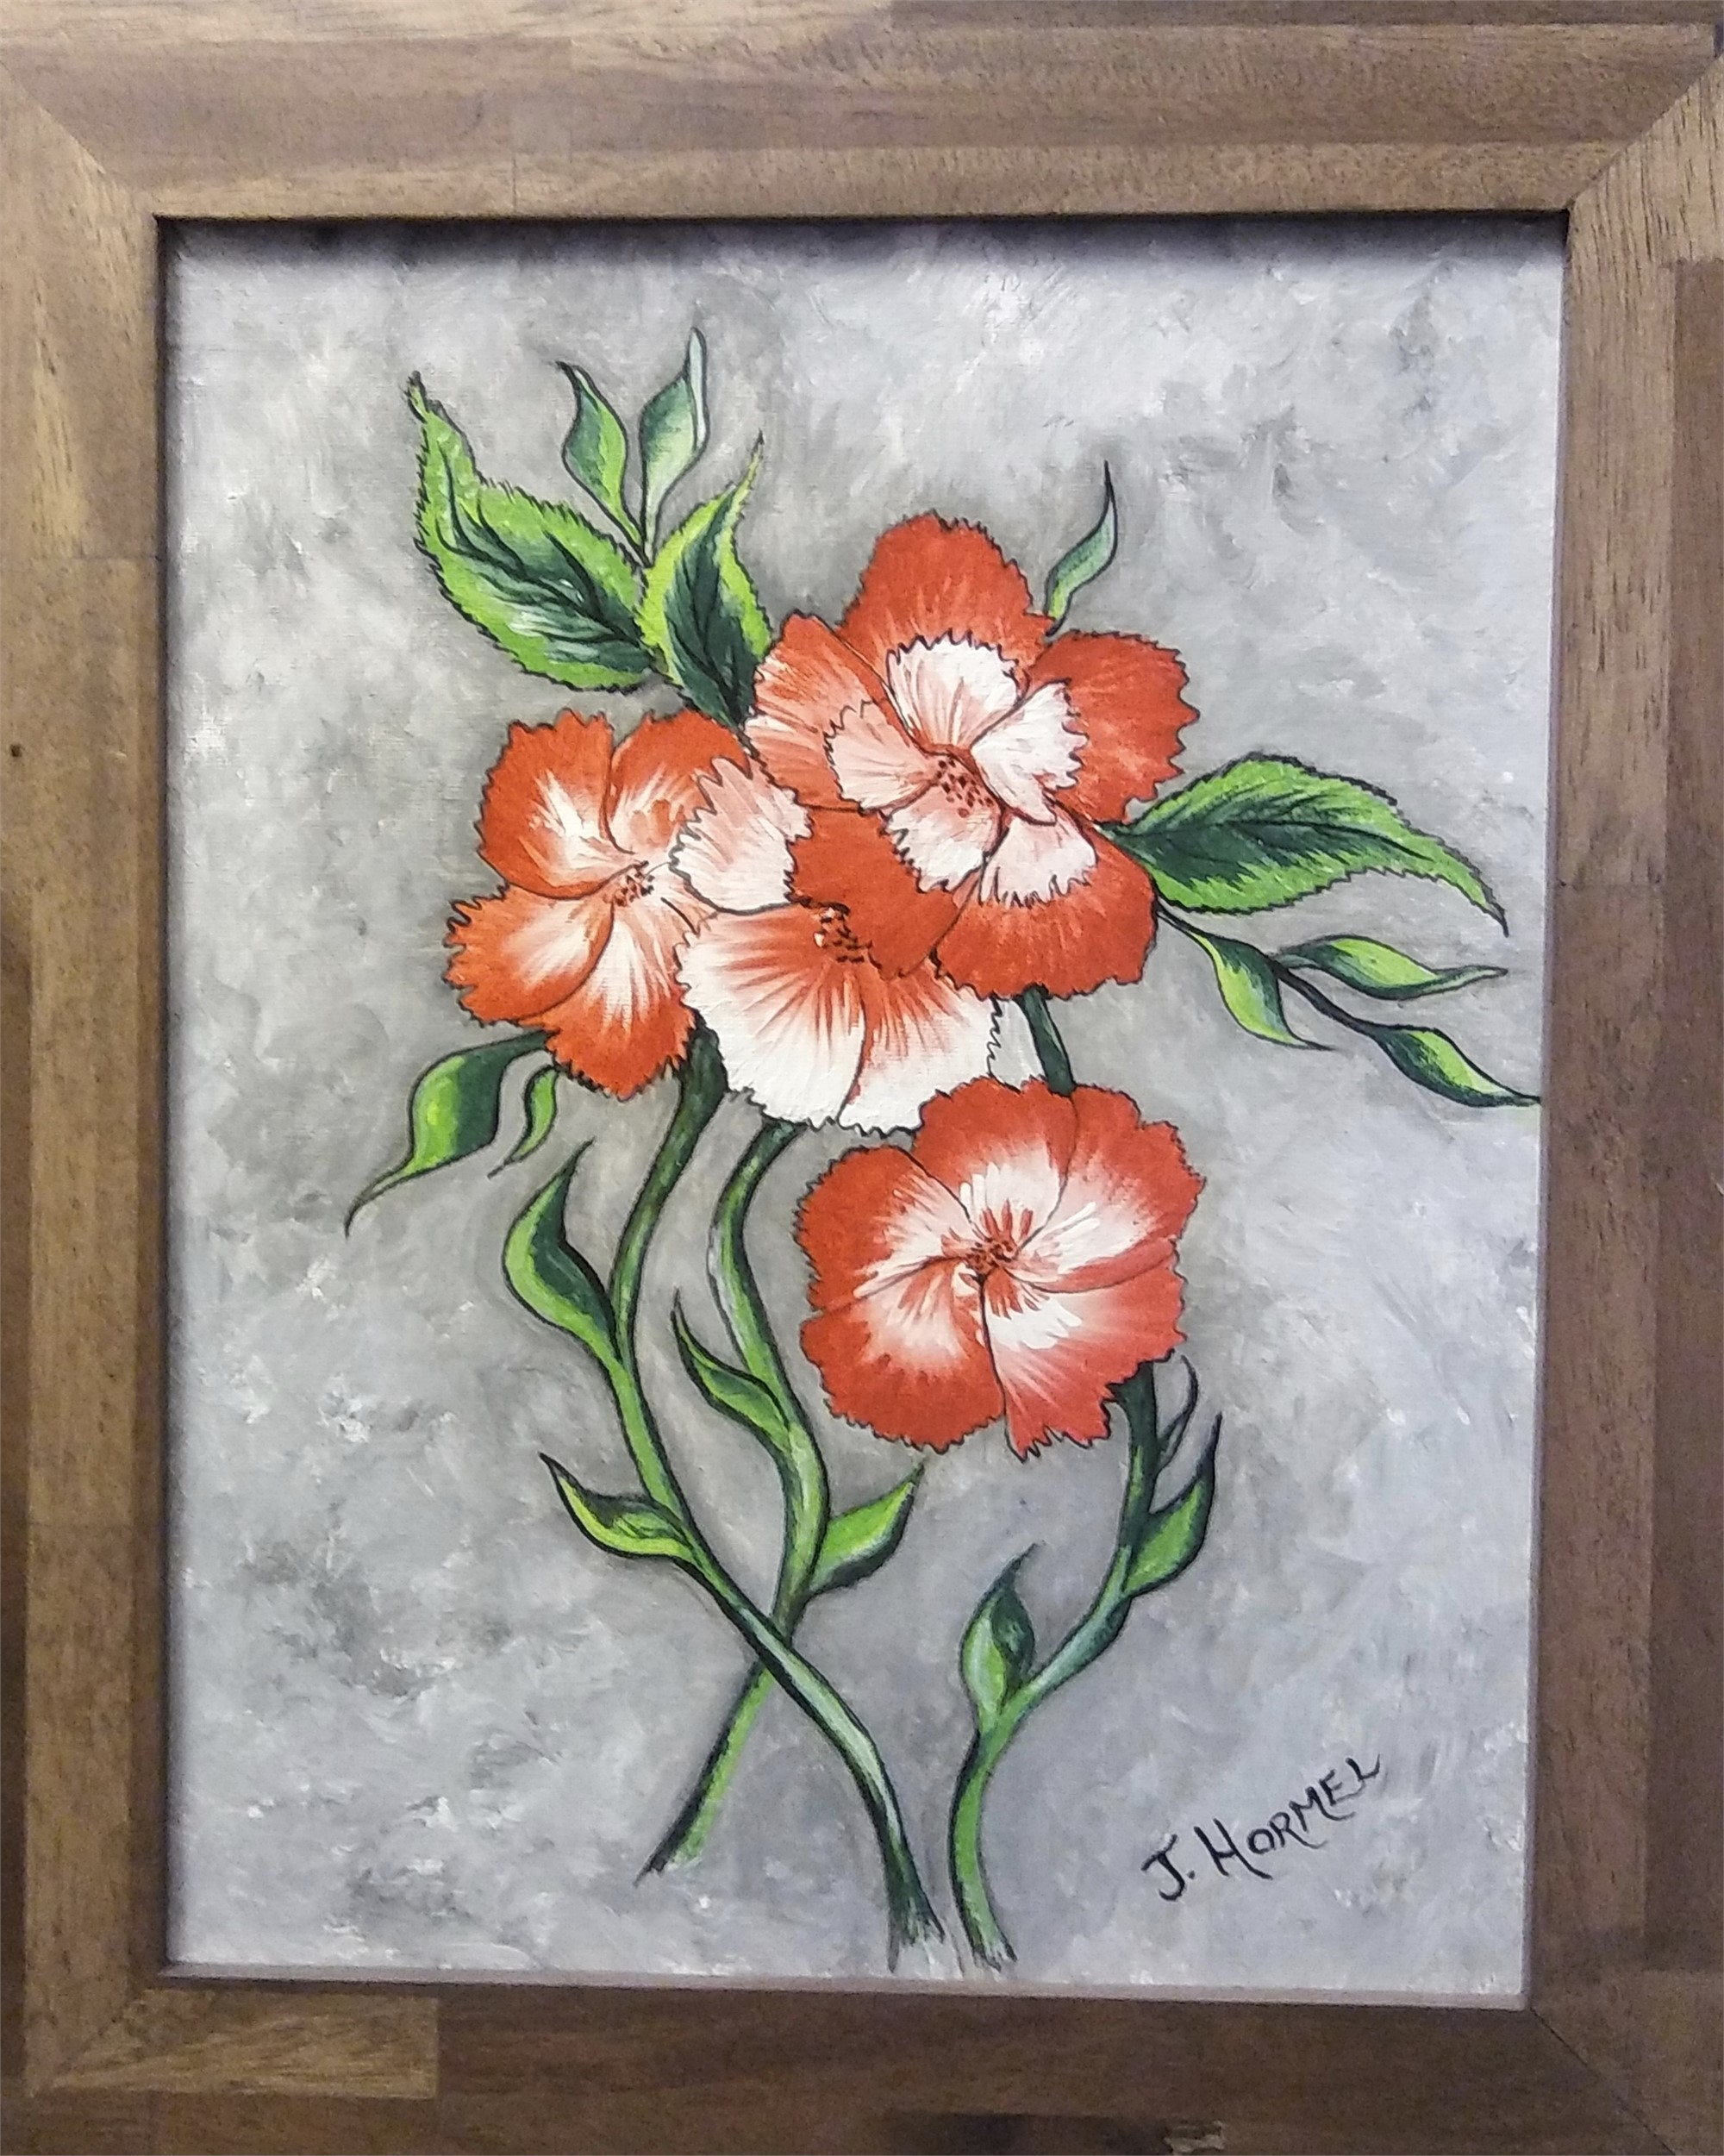 Swirled Flowers by June Hormel (Newberg, OR)